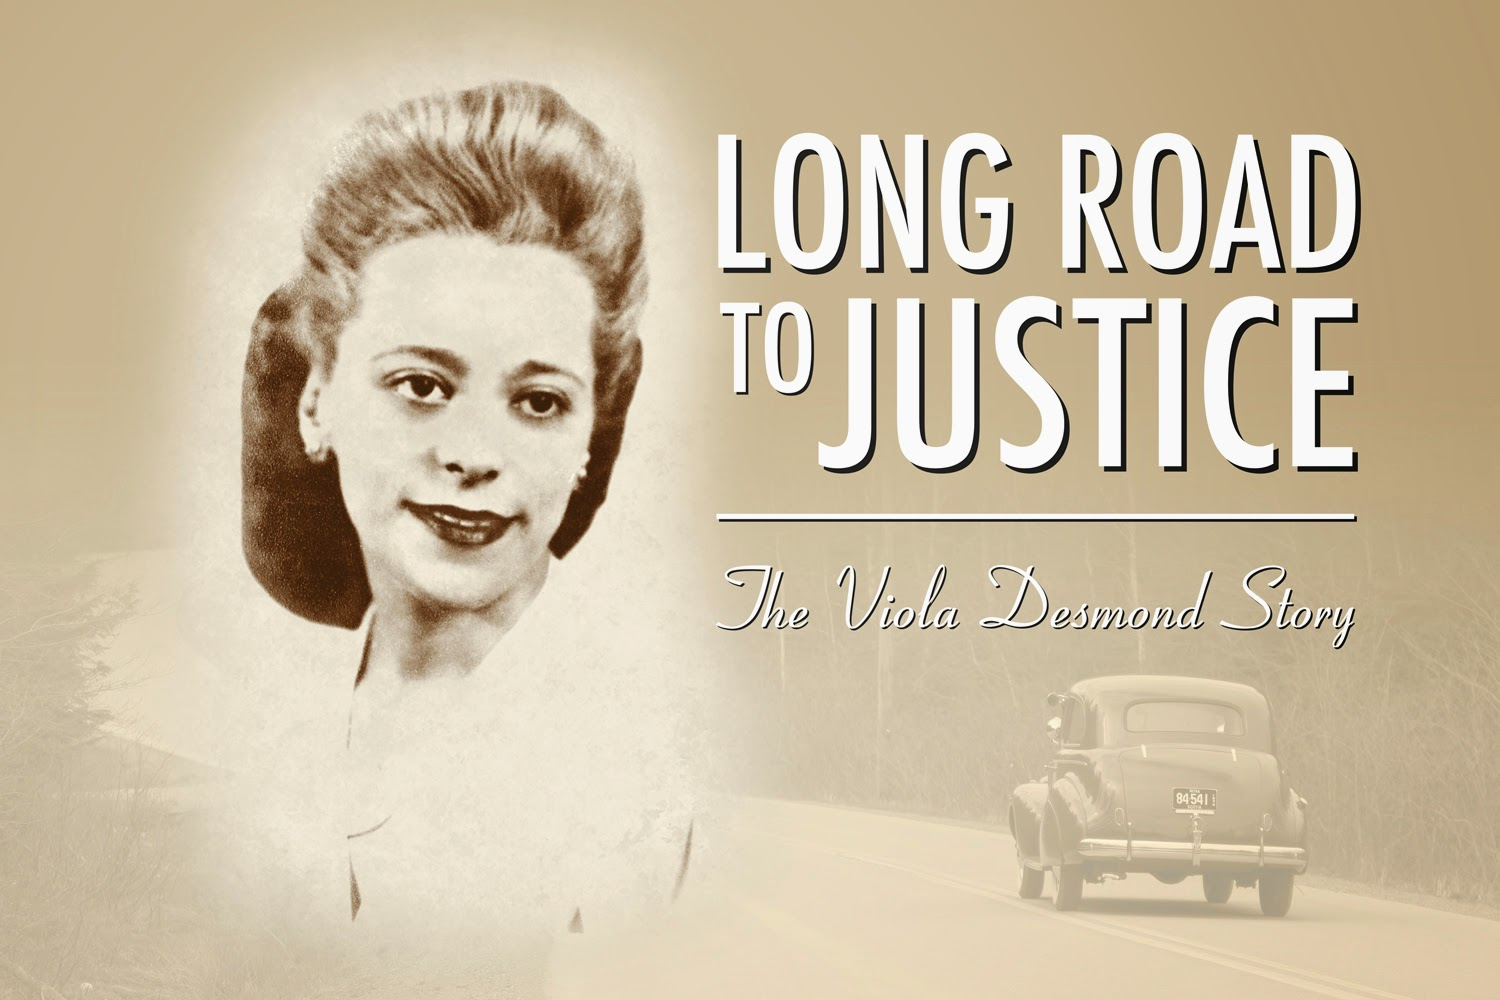 http://discover.halifaxpubliclibraries.ca/?q=title:long%20road%20to%20justice